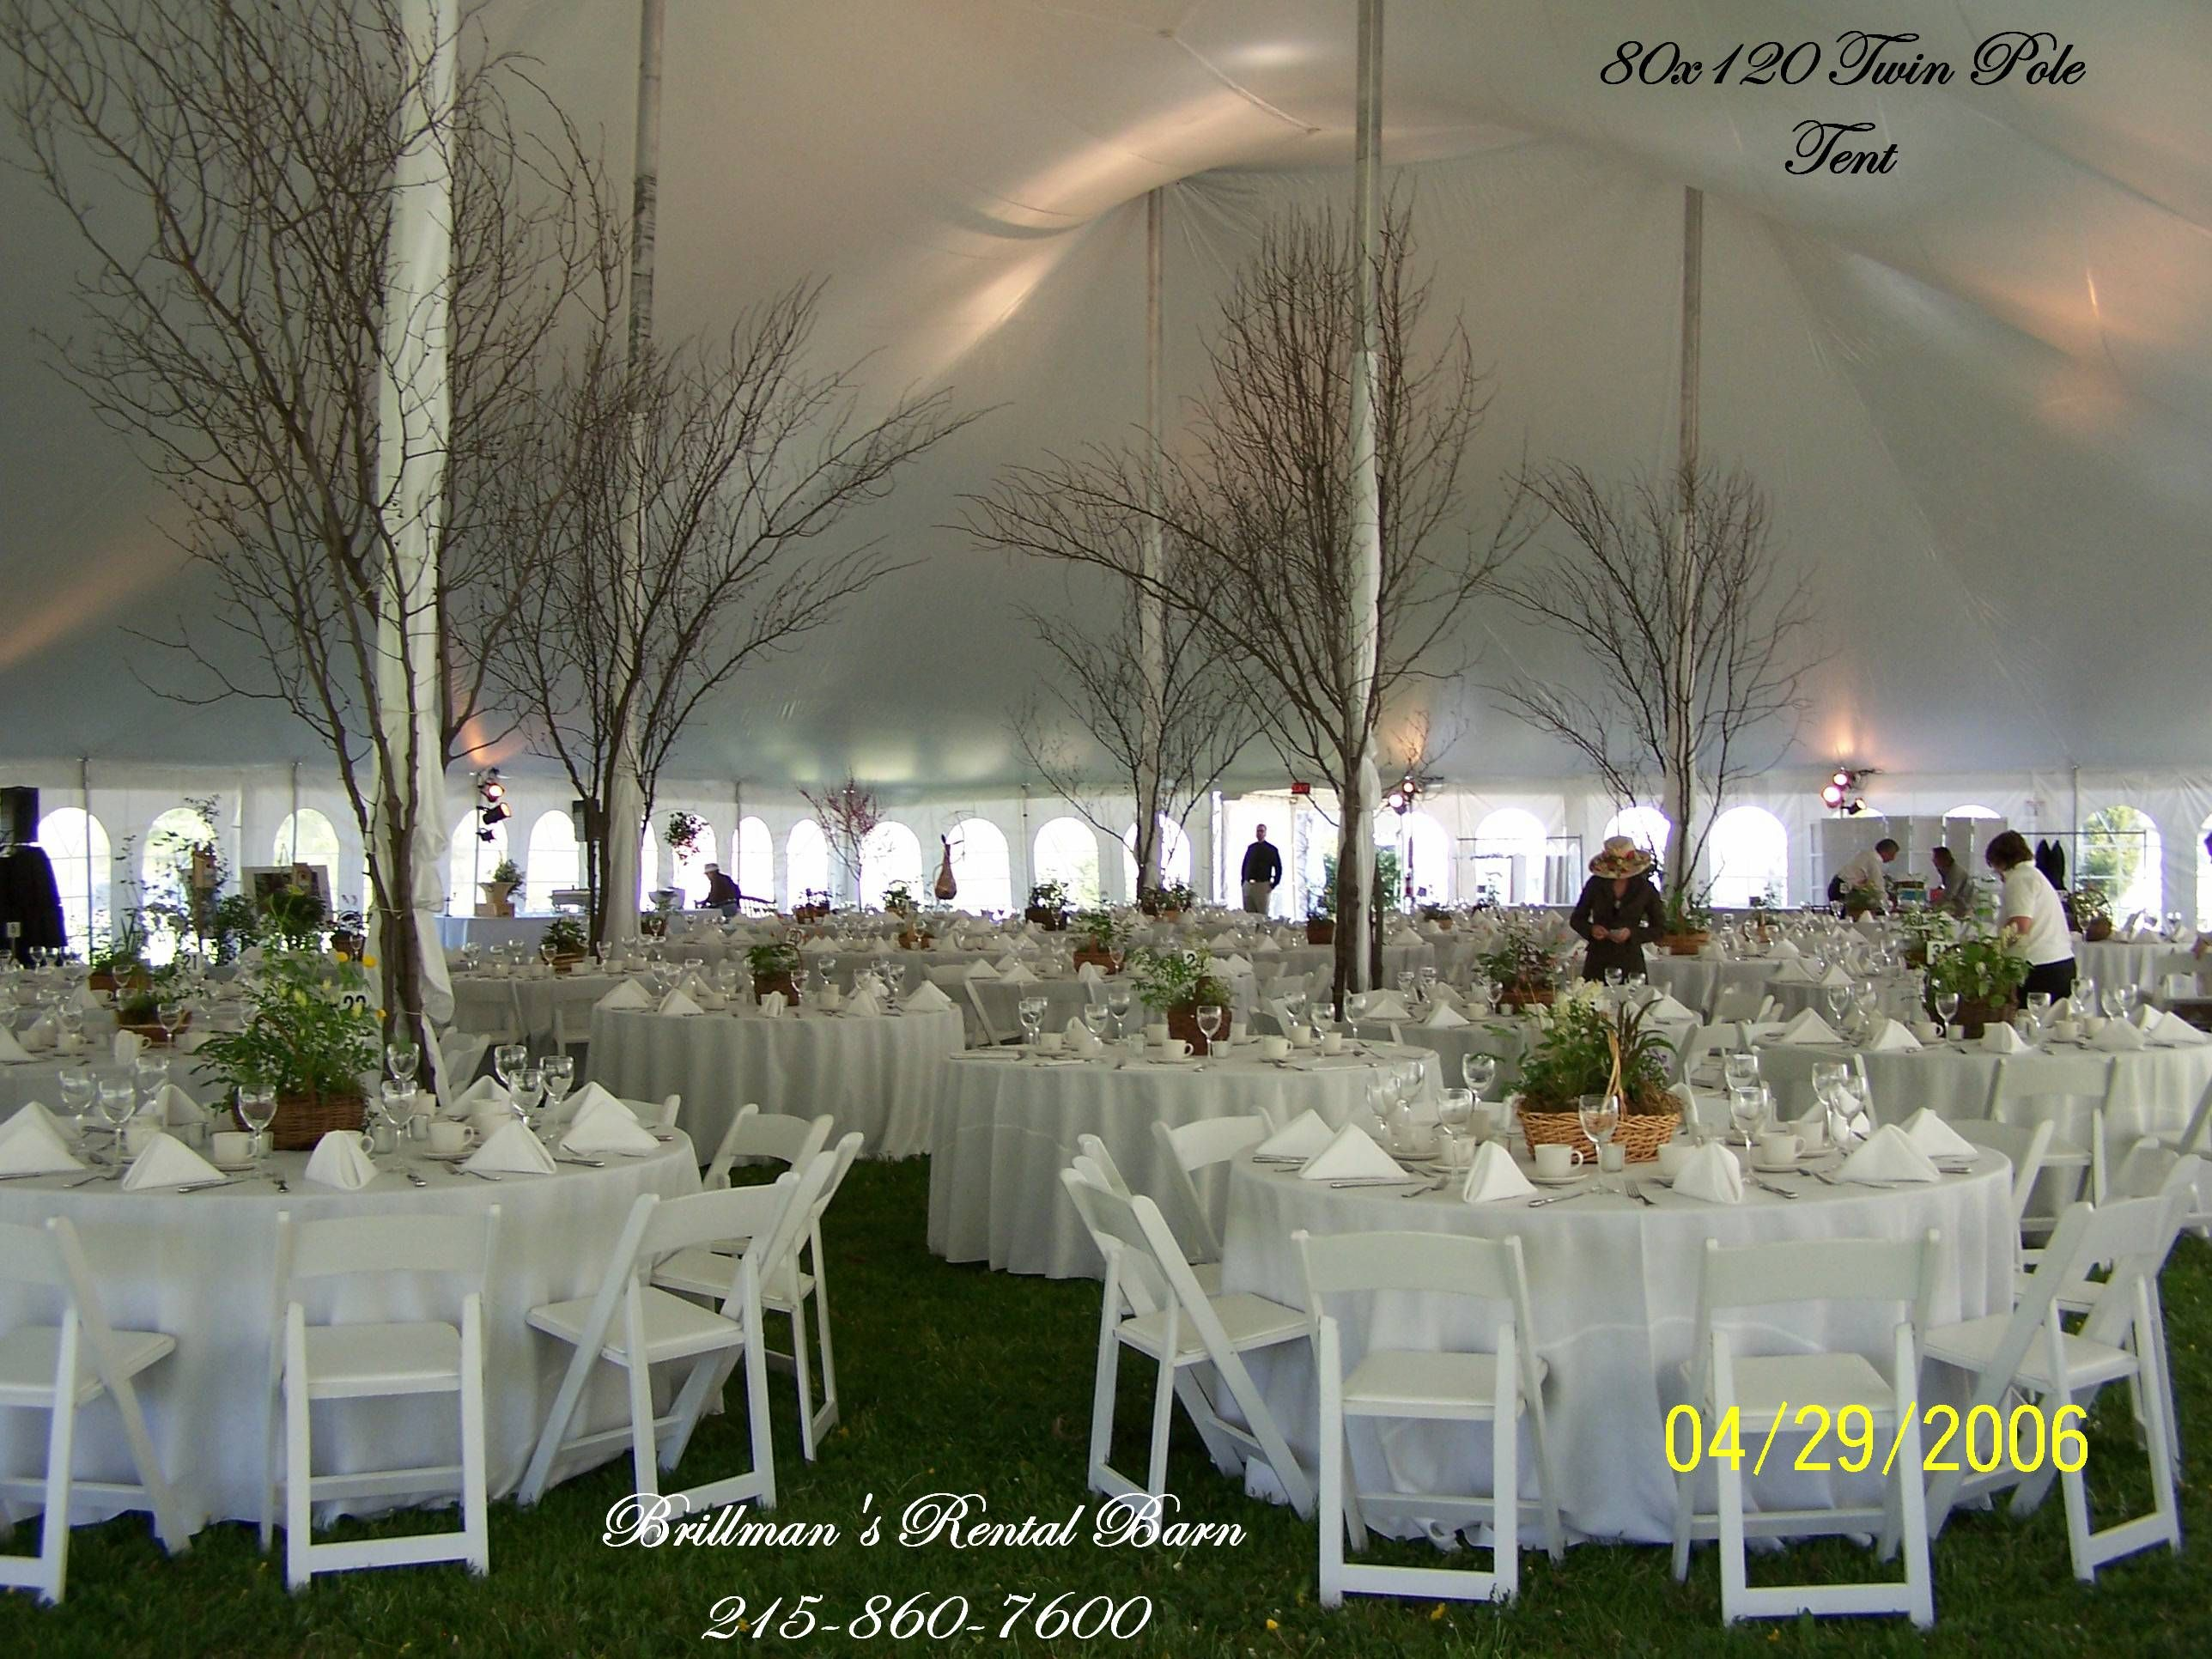 Wedding decorations rental  Tree branches around the tent poles  Wedding  Pinterest  Tent